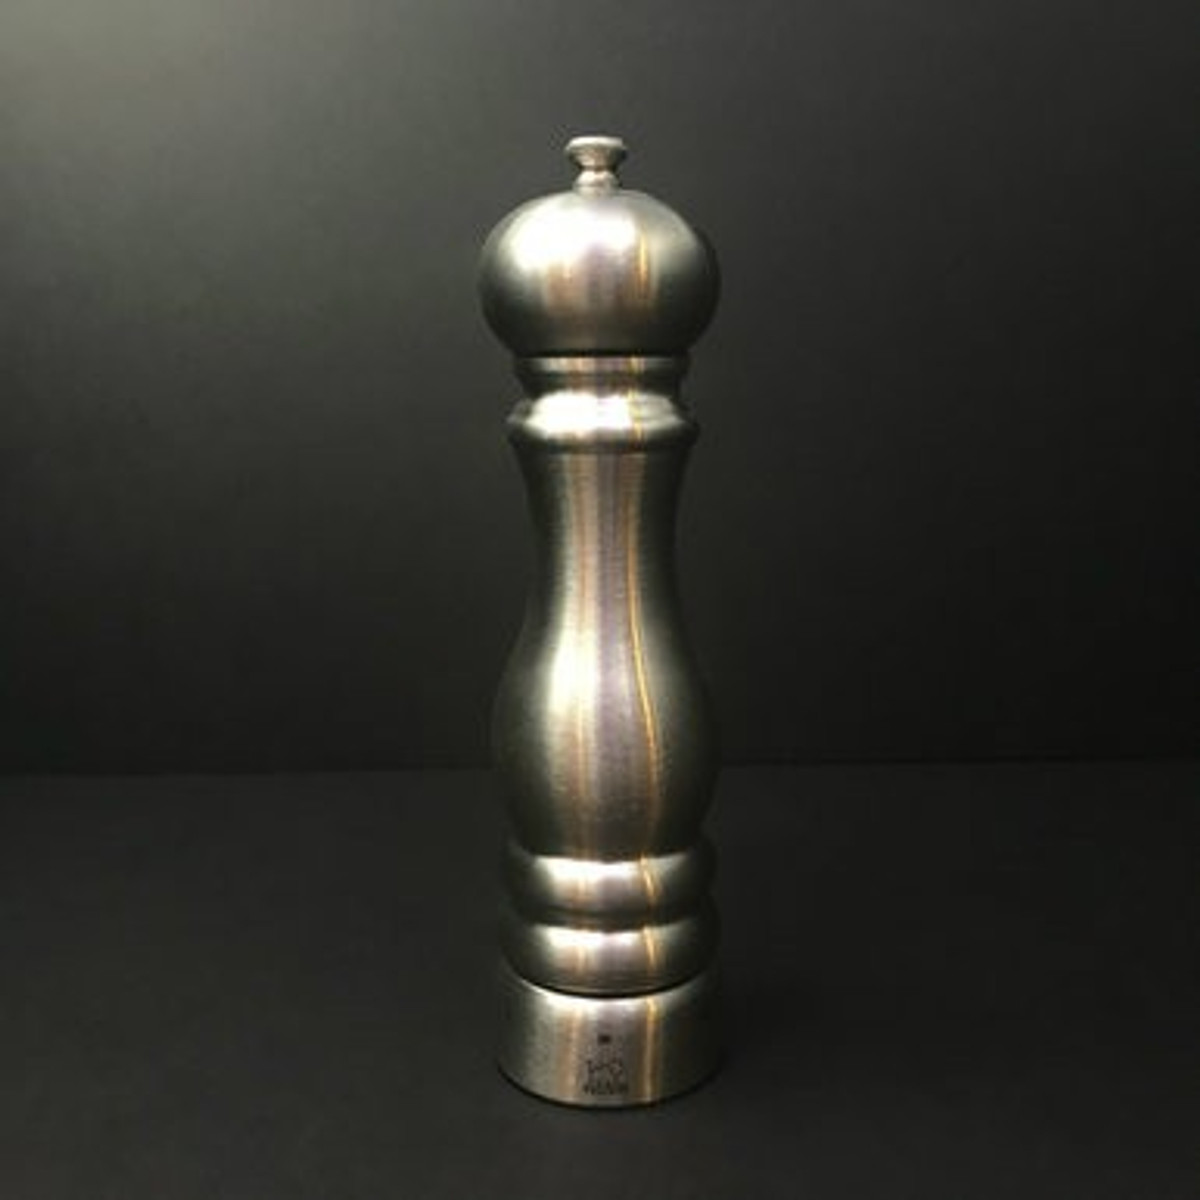 Peugeot - Pepper Mill - Chef Collection 9